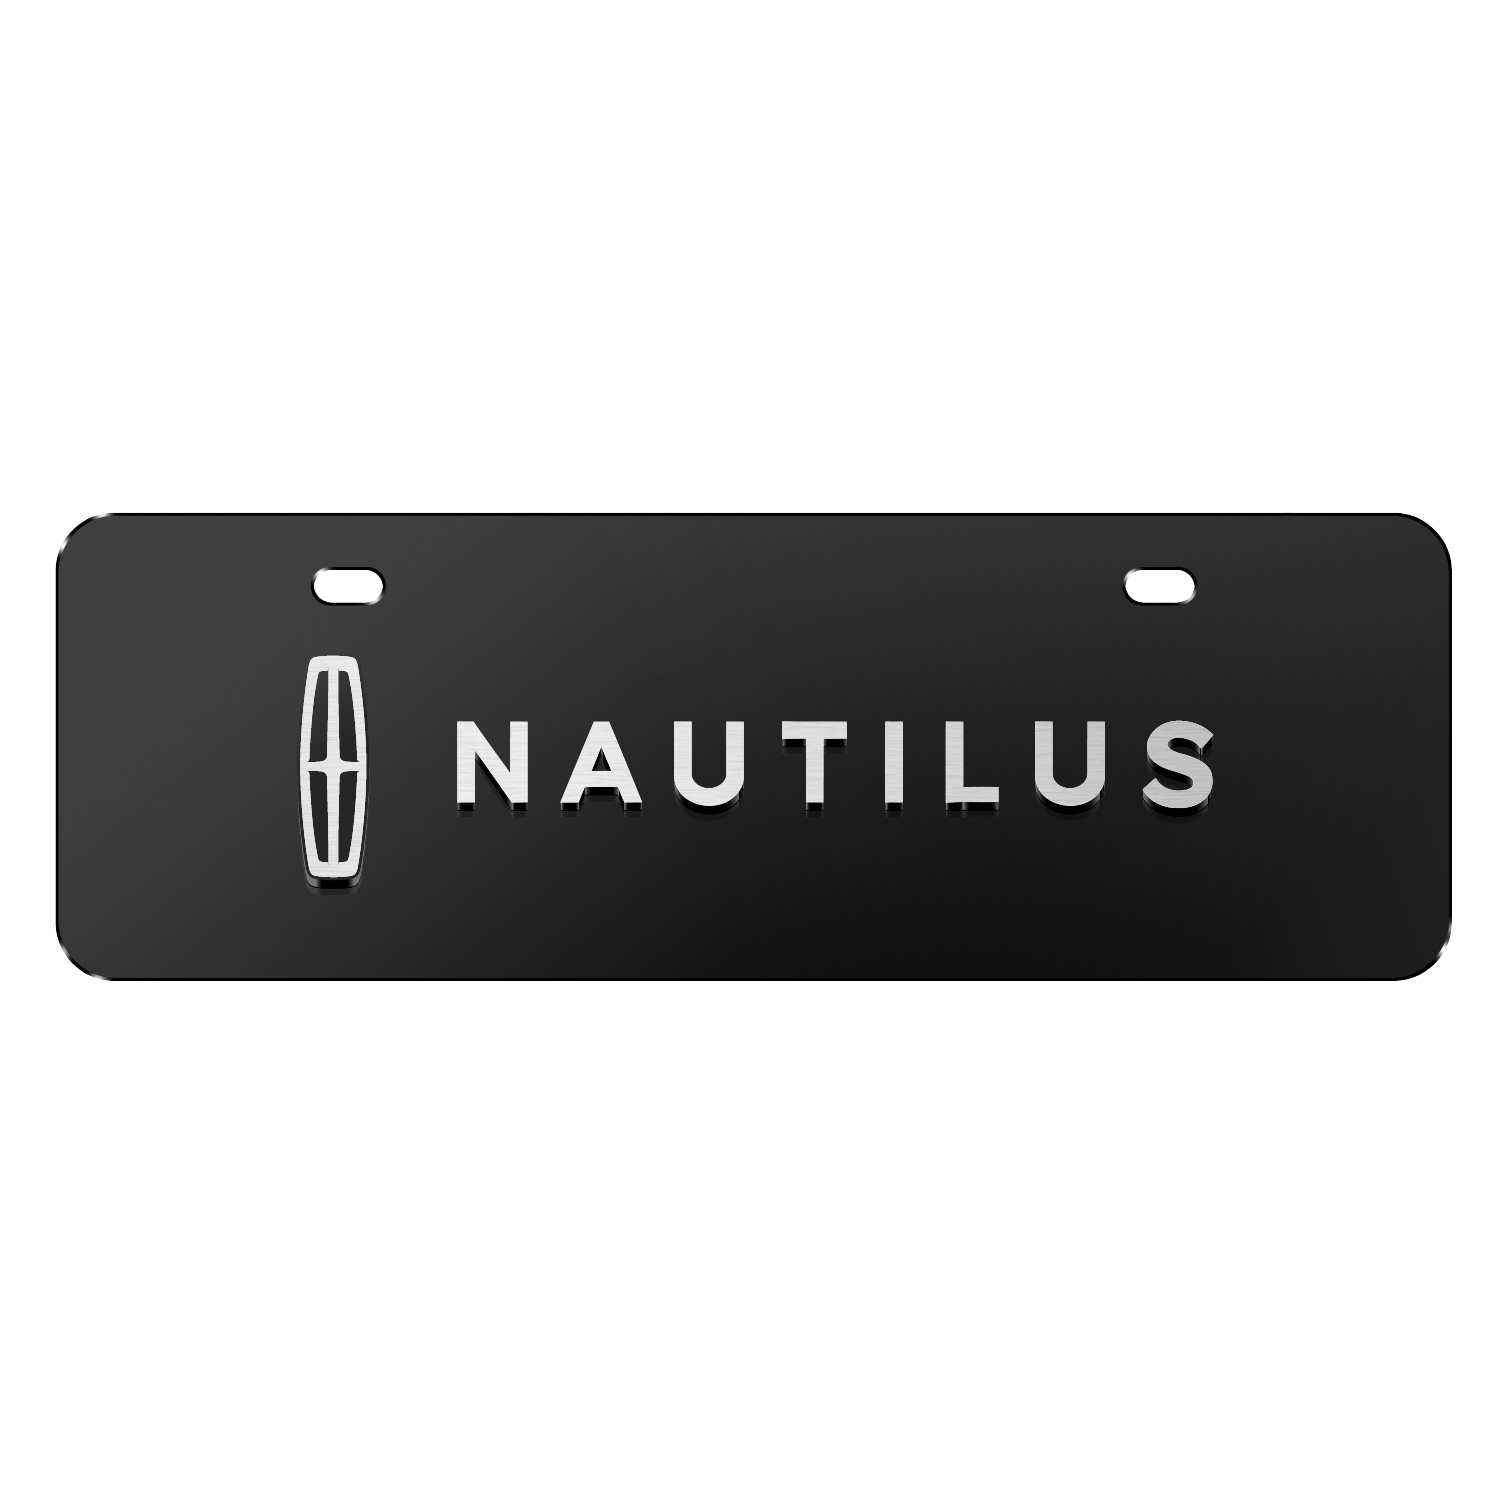 "Lincoln Nautilus 3D Logo on Black 12""x4"" Half-Size Stainless Steel License Plate"